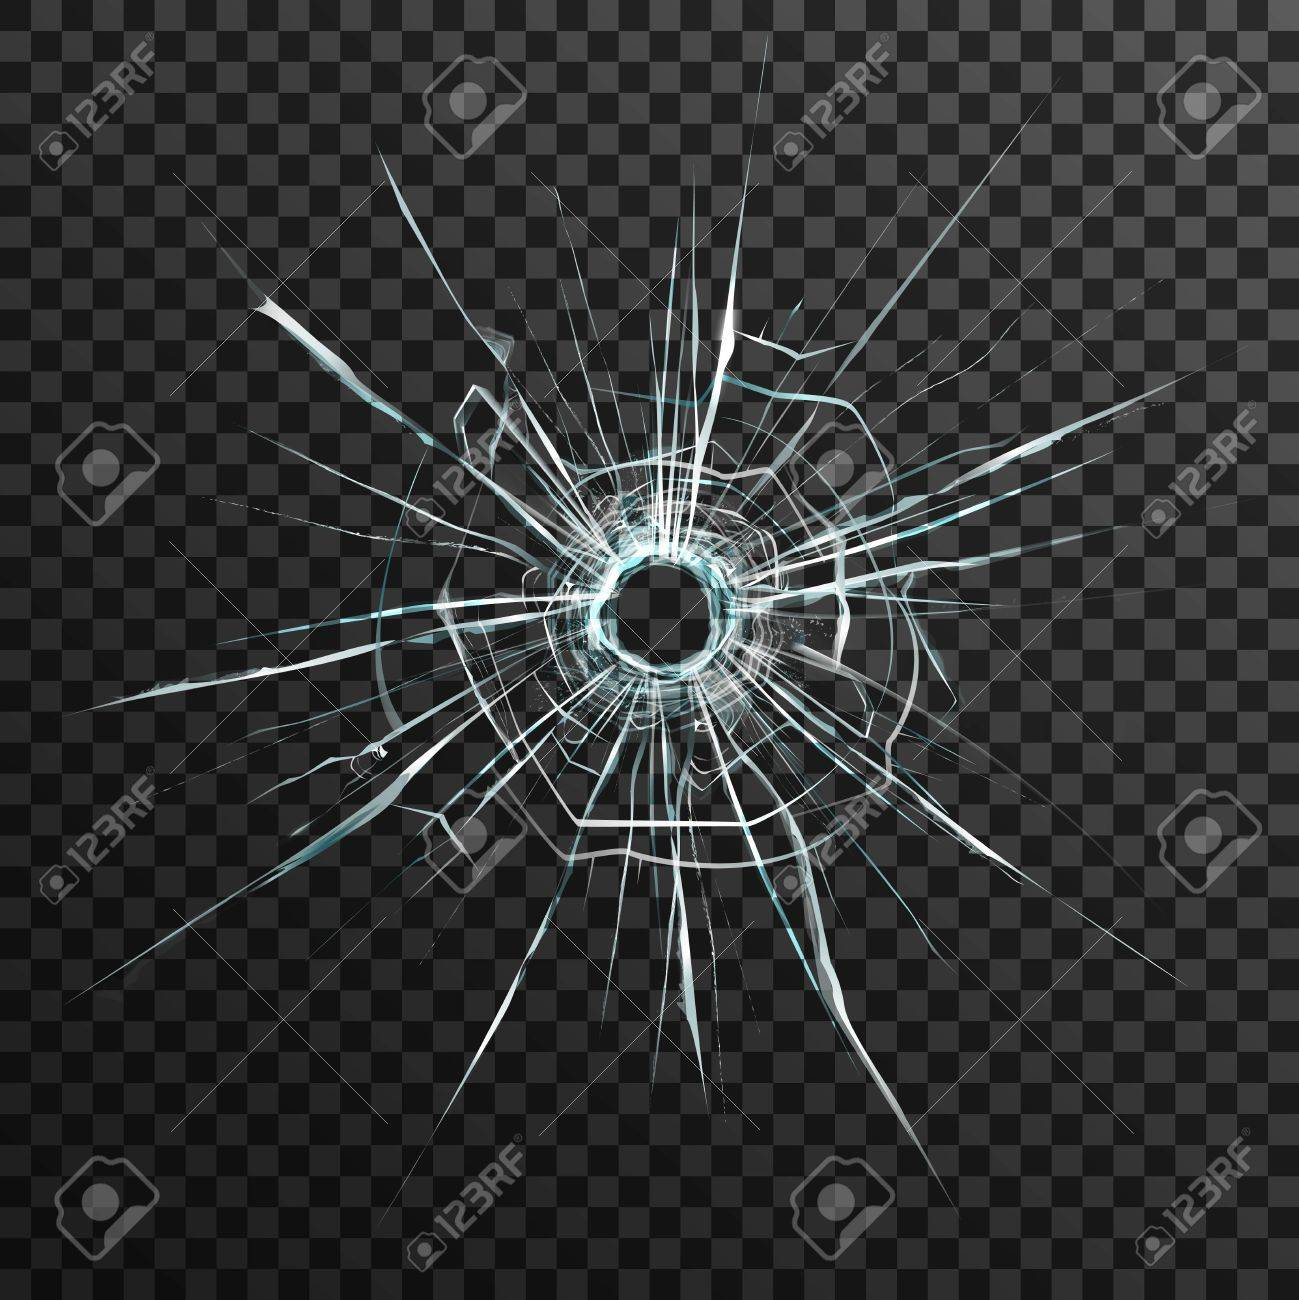 Bullet hole in transparent glass on abstract background with grey and black ornament vector illustration in realistic style. - 55265591